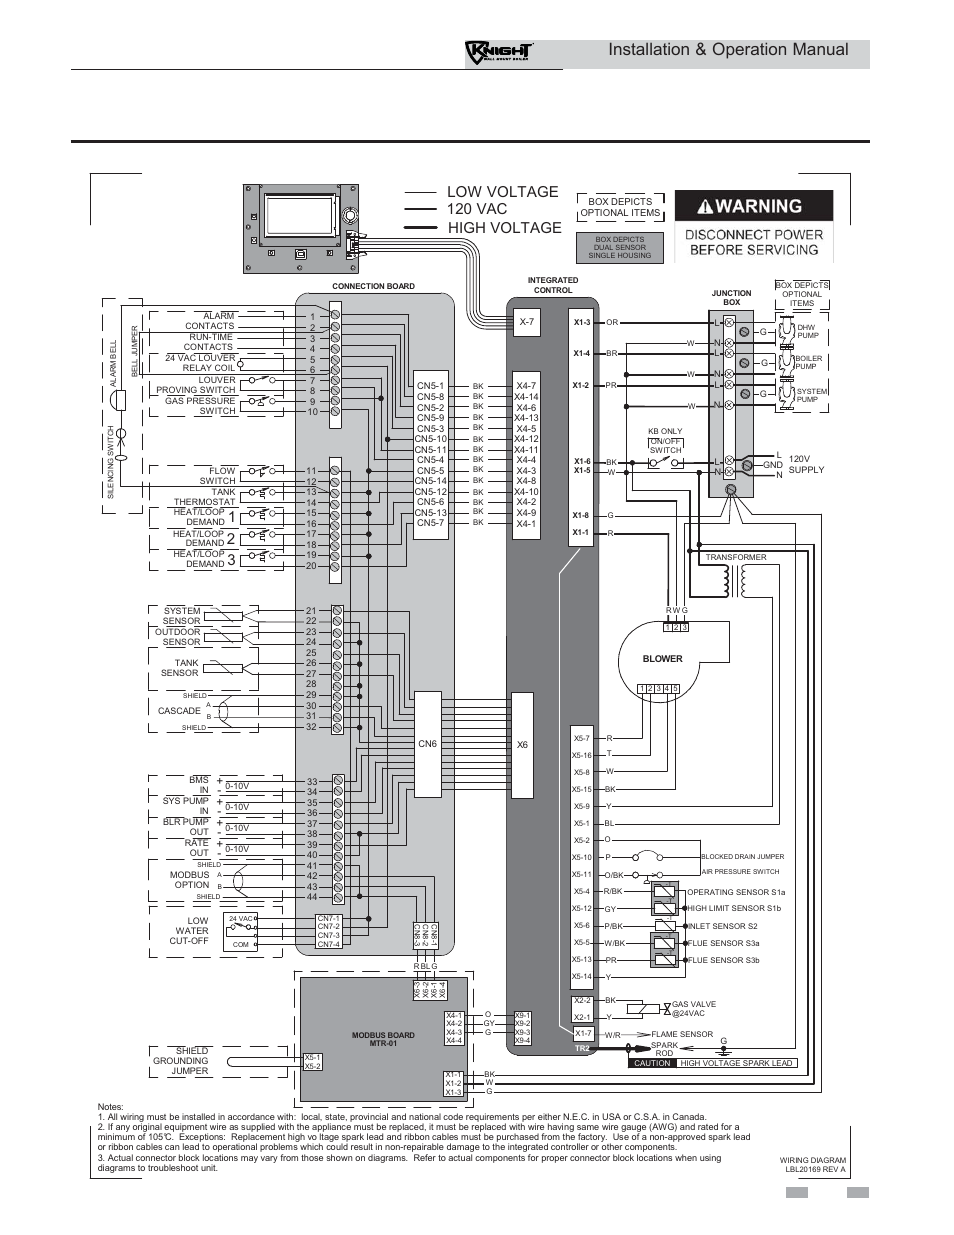 Lochinvar Wiring Diagram Layout Diagrams 1996 Allegro Motorhome Installation Operation Manual High Voltage Low Rh Manualsdir Com Basic Electrical Residential